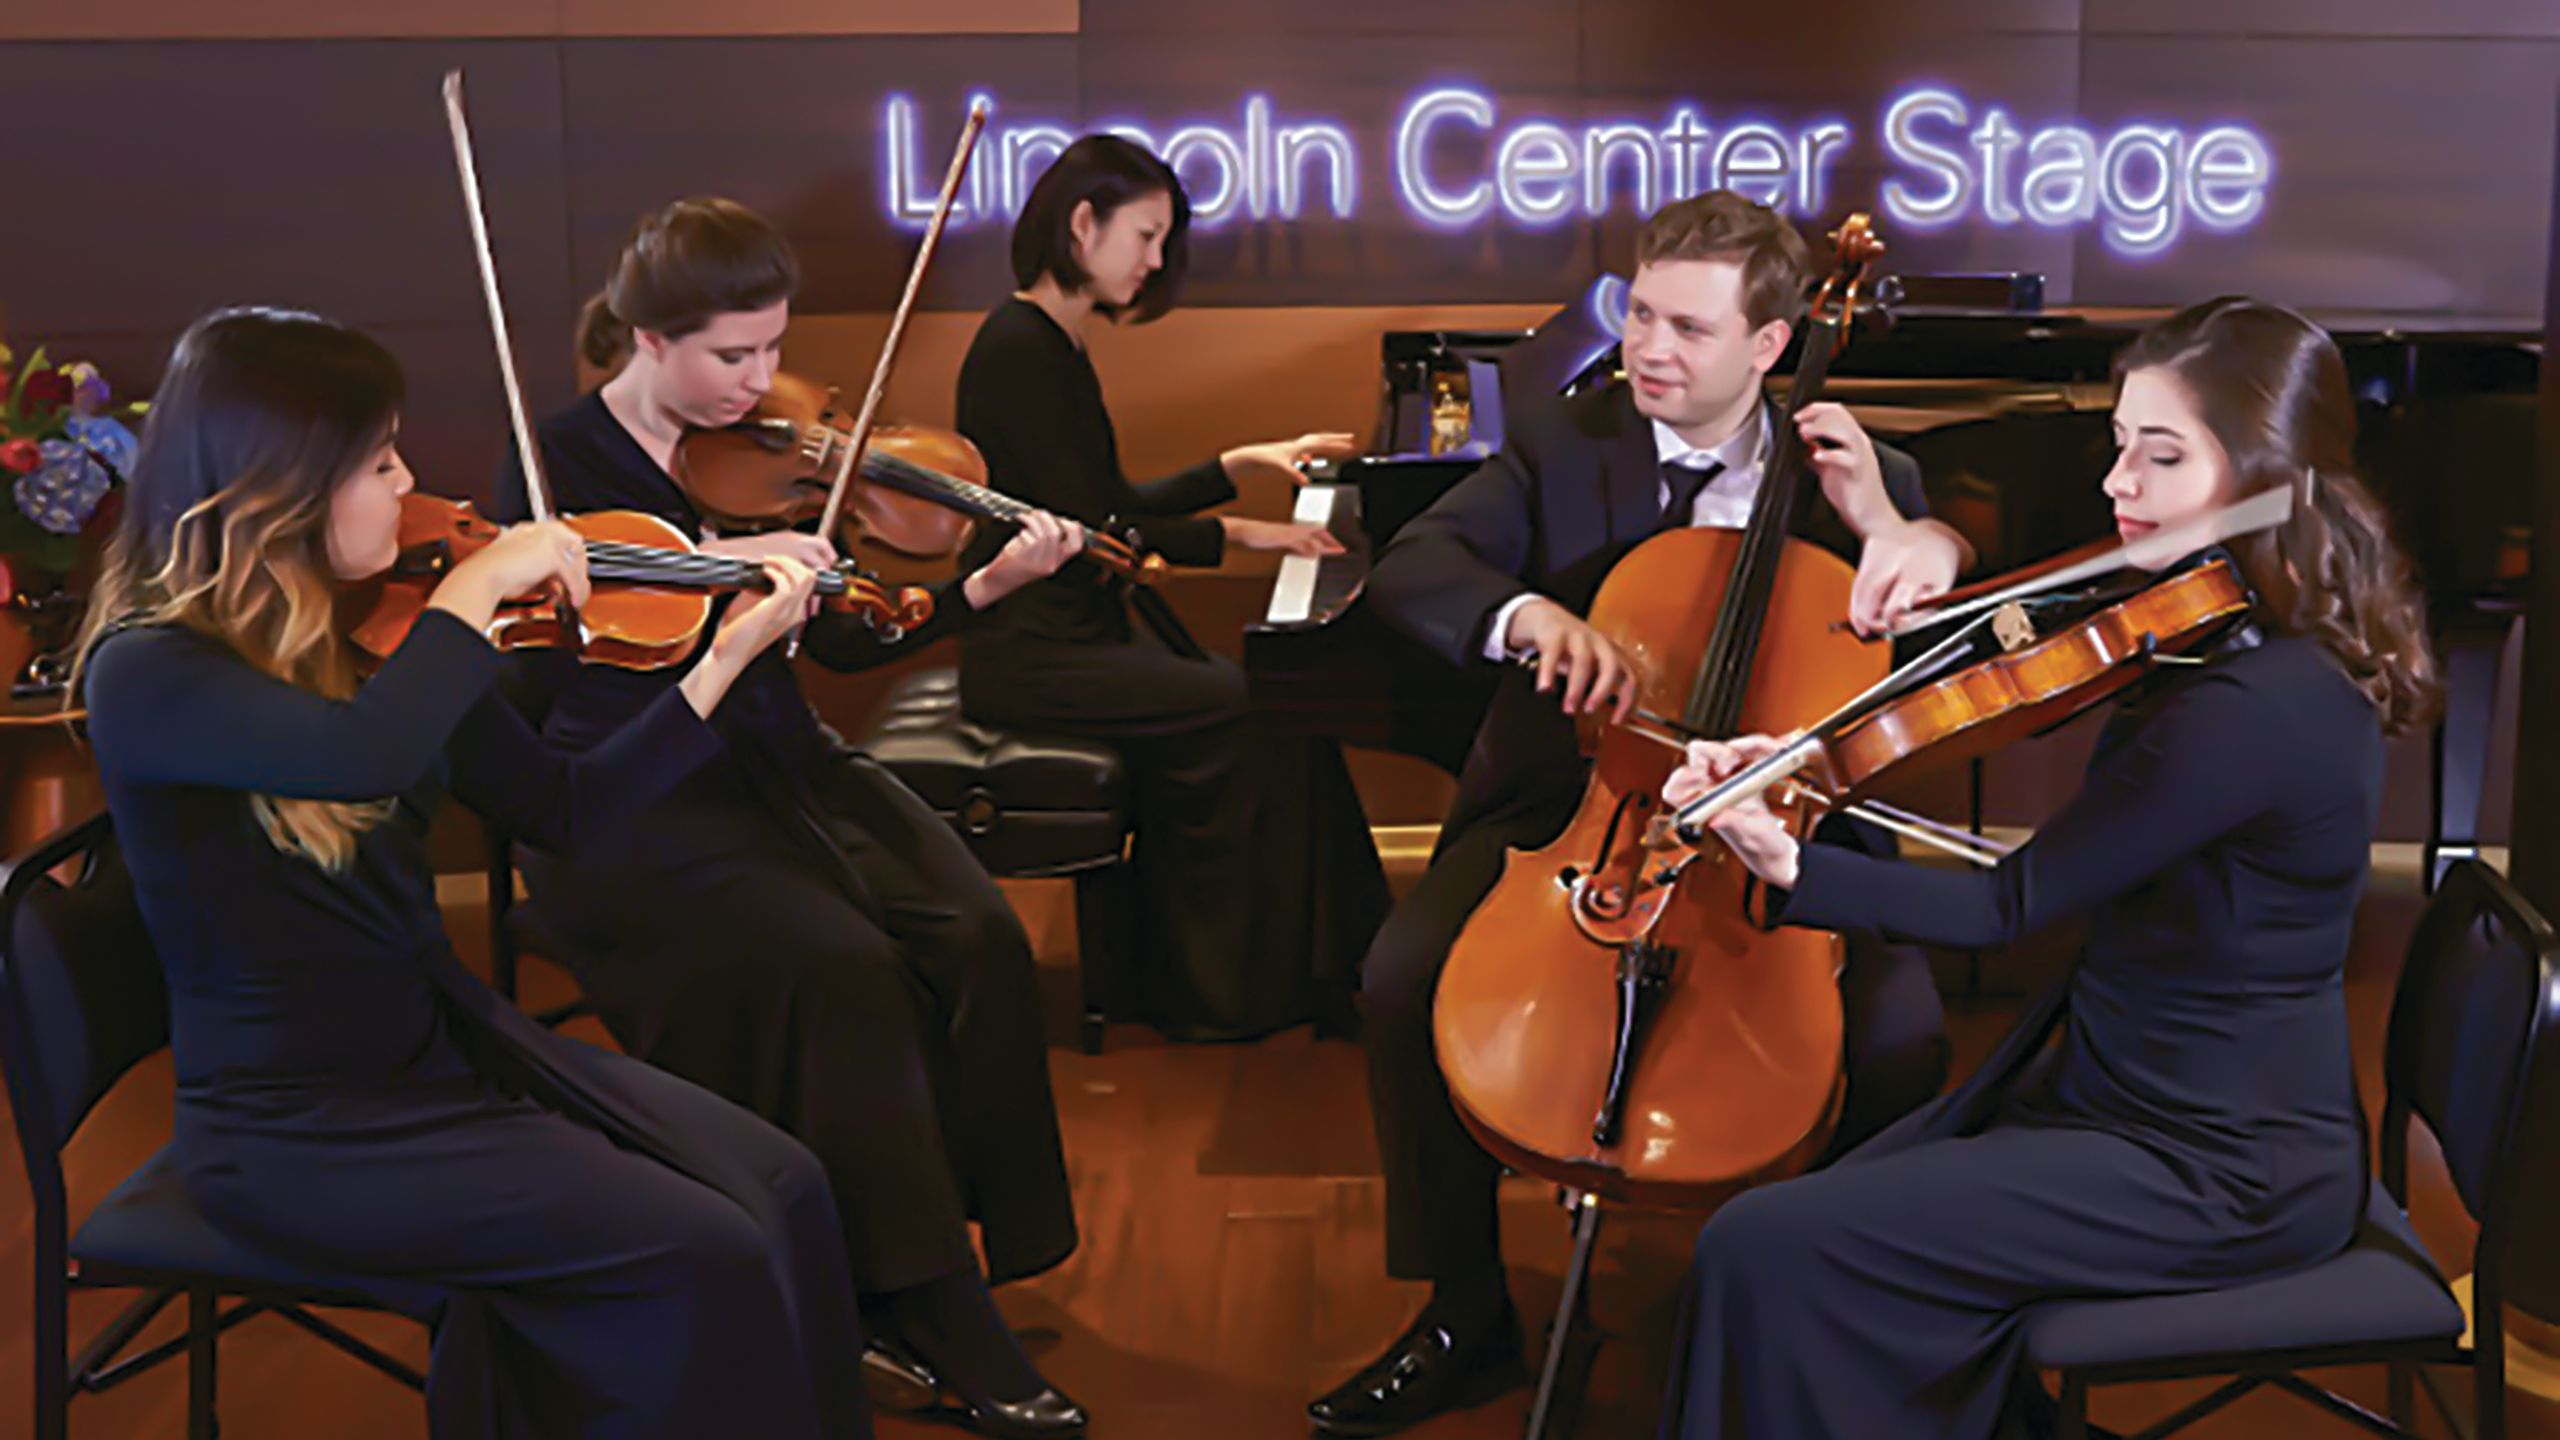 The cruise line also has a partnership with Lincoln Center, which supplies classically trained musicians.